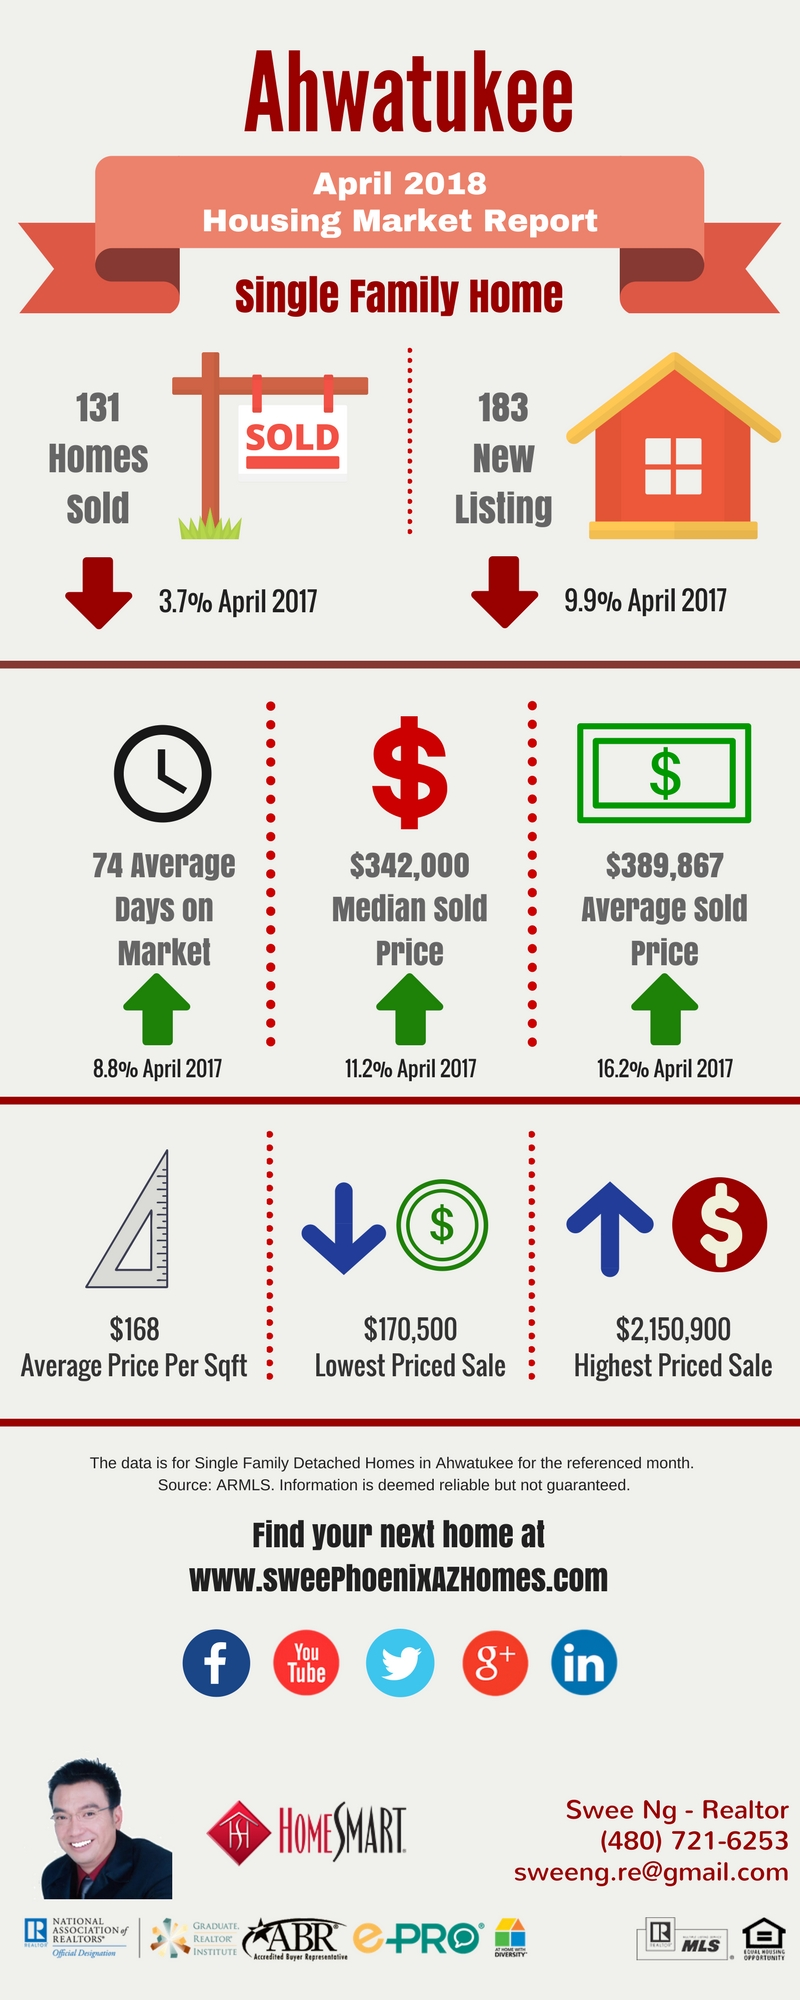 Ahwatukee Housing Market Trends Report April 2018, House Value, Real Estate and Statistic by Swee Ng